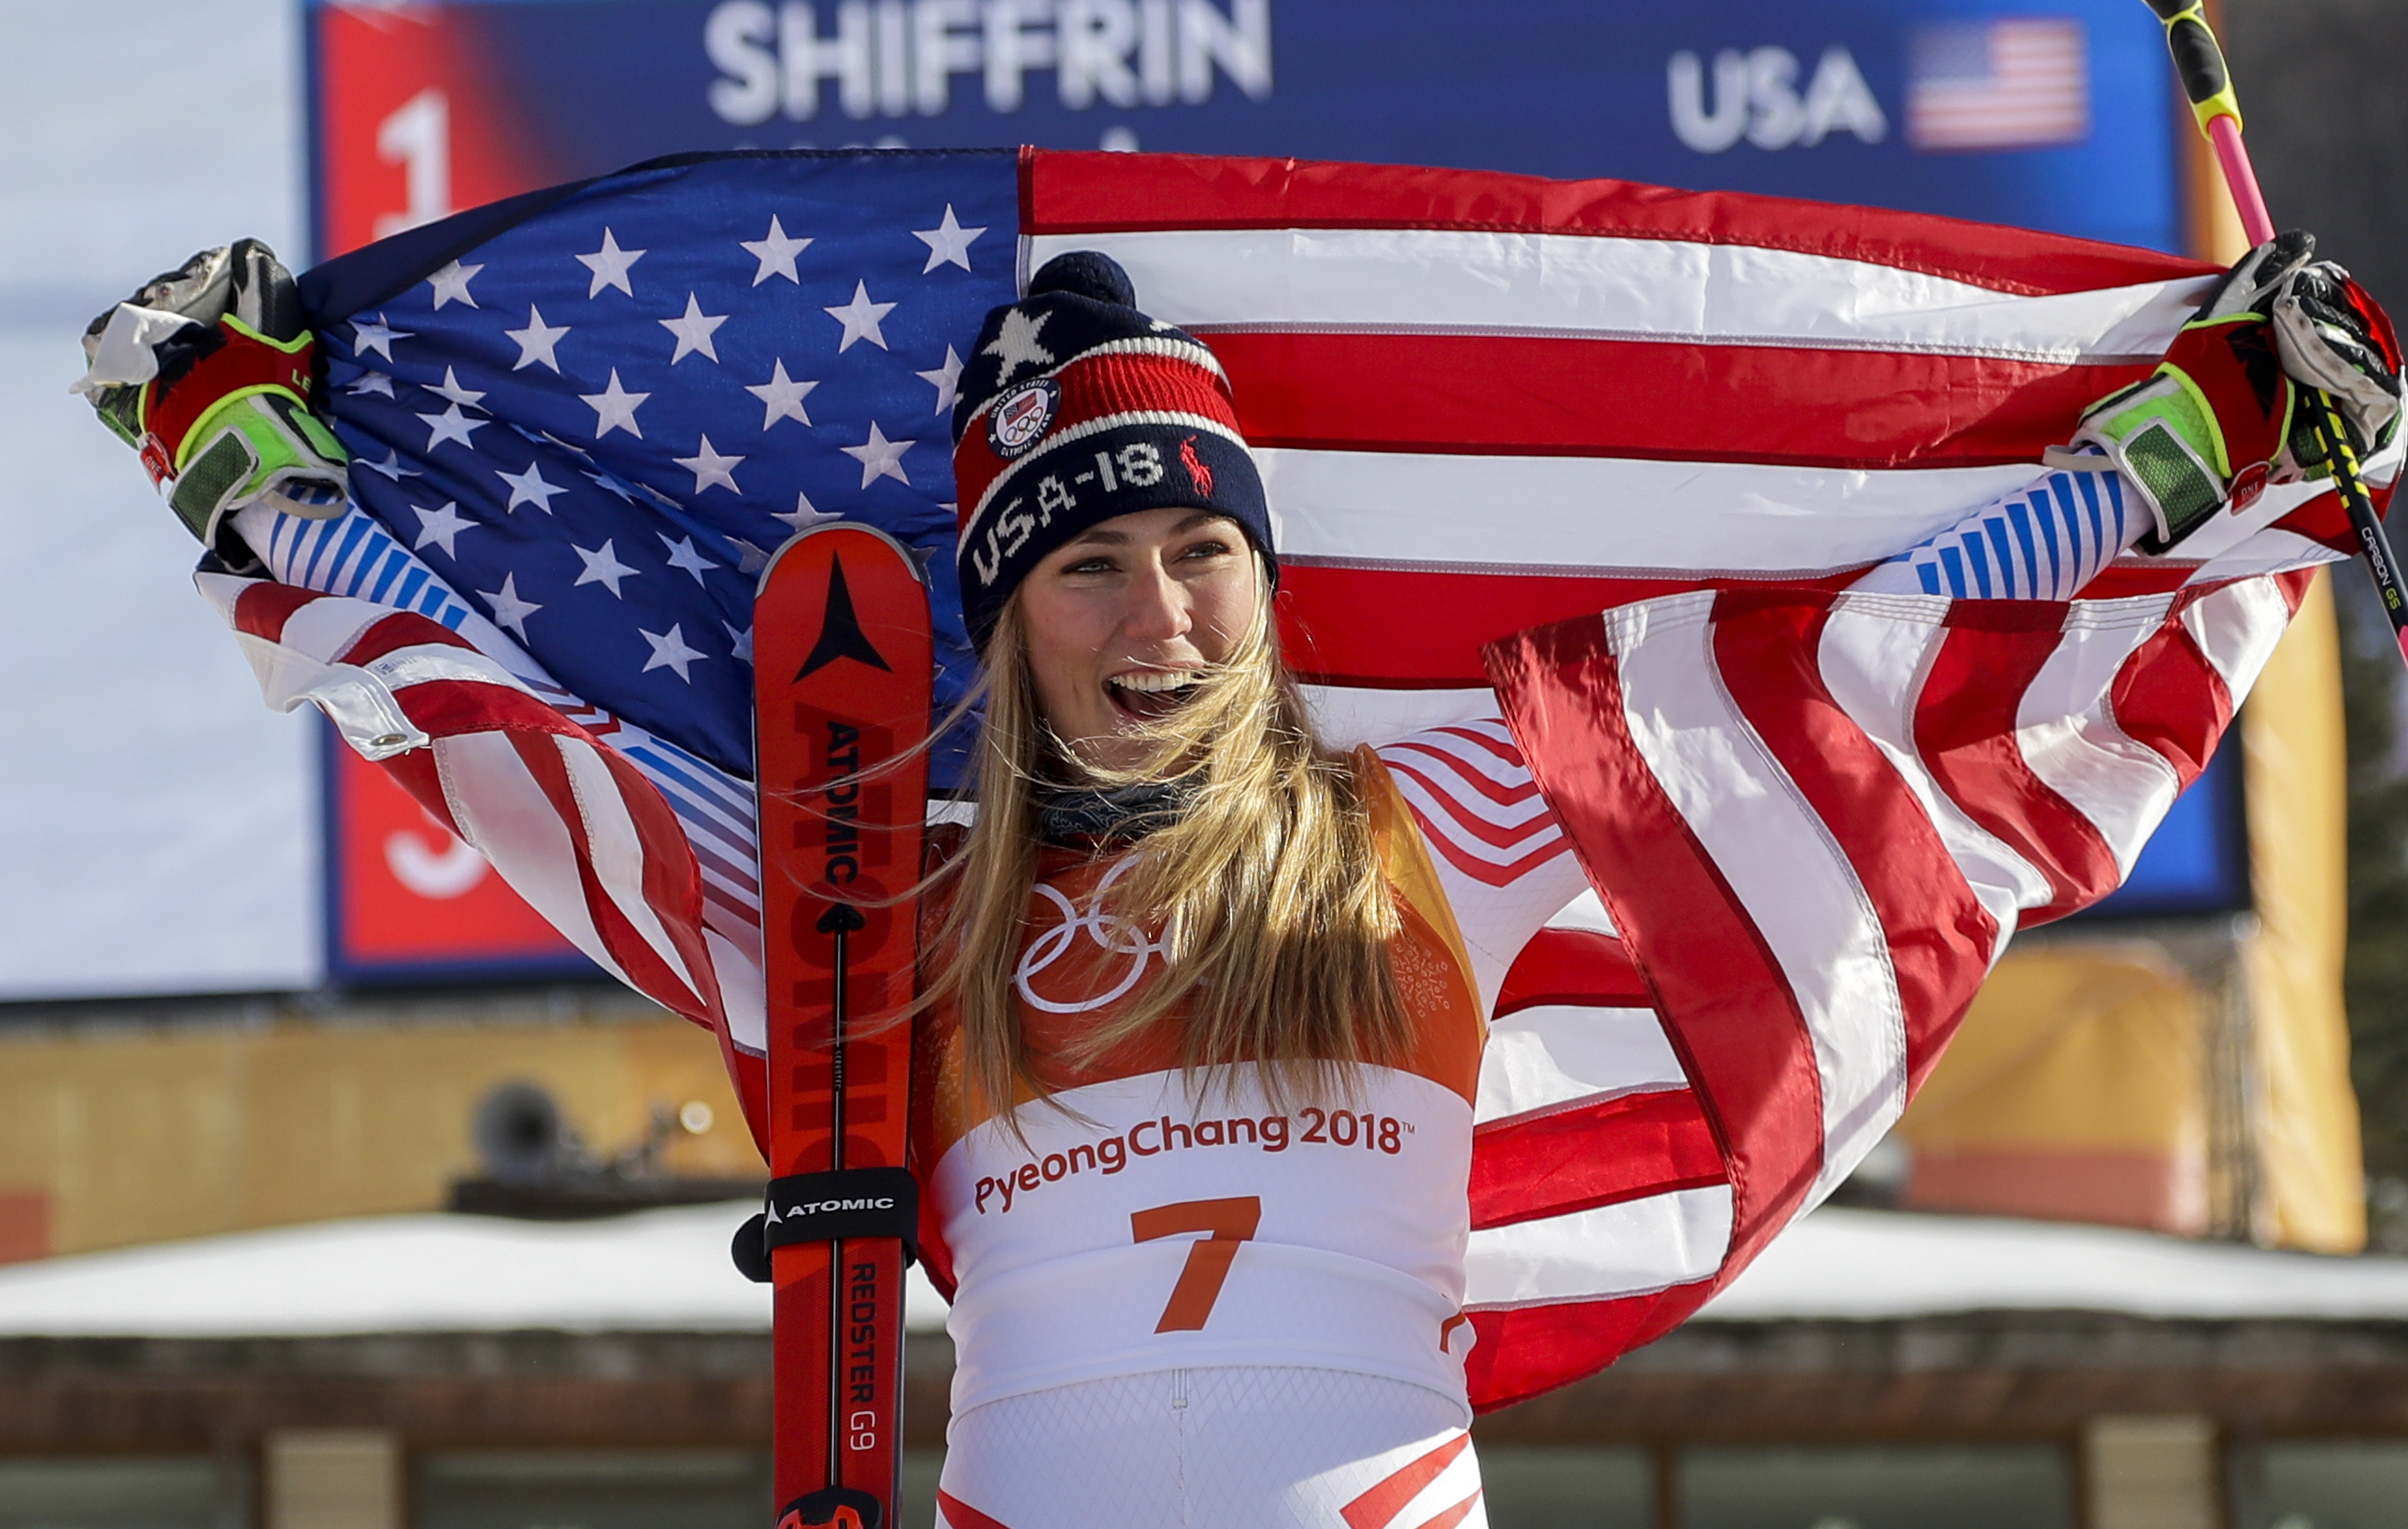 Mikaela Shiffrin celebrates her gold medal in Pyeongchang, South Korea, Feb. 15, 2018.